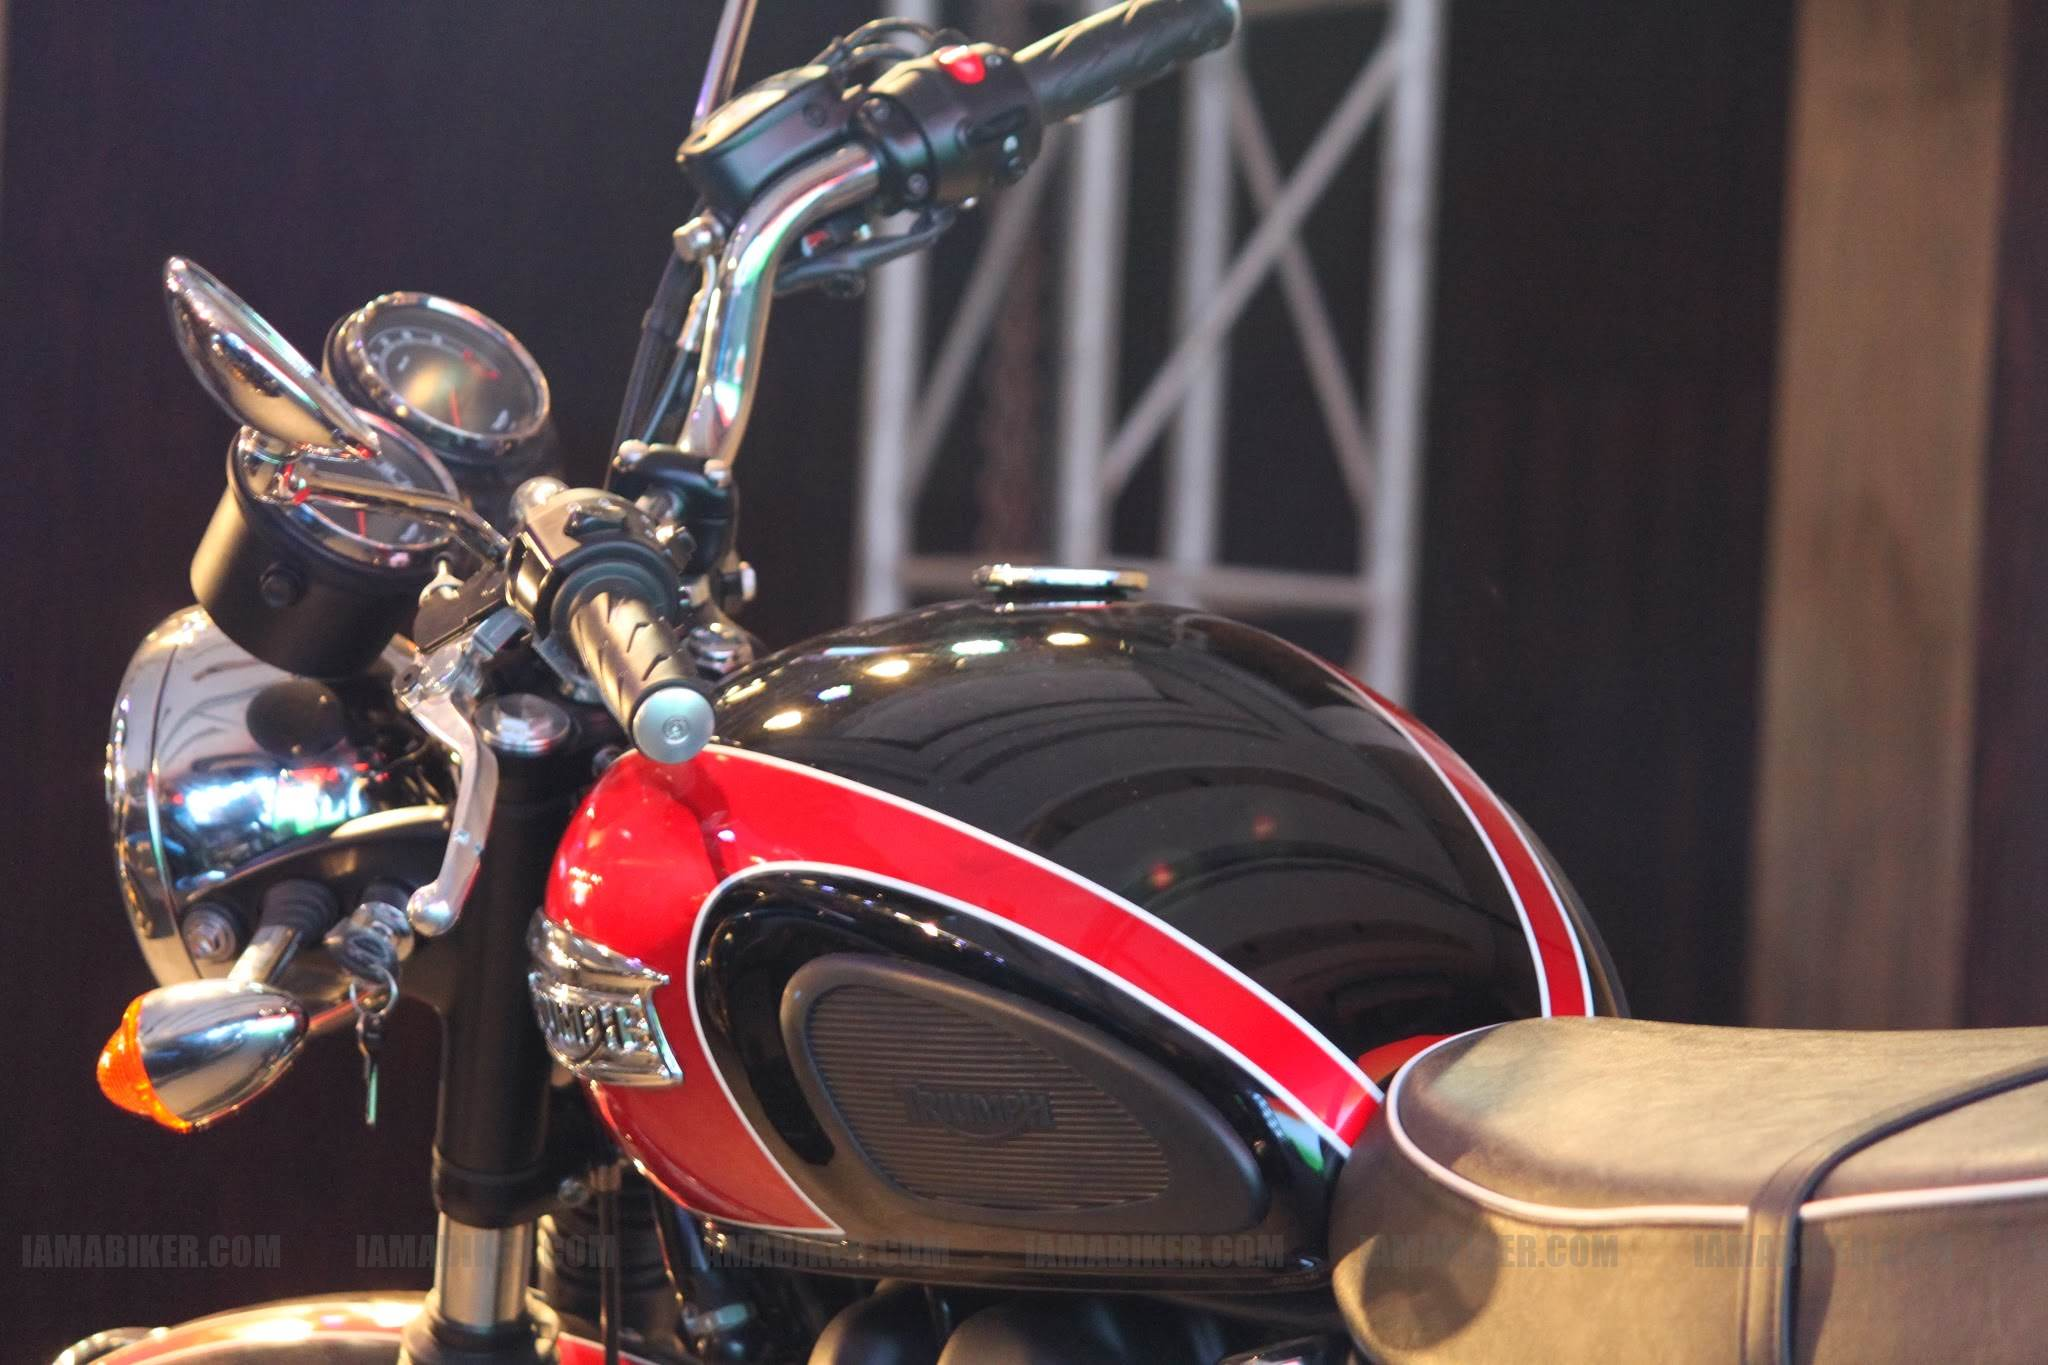 triumph motorcycles india launch - 56